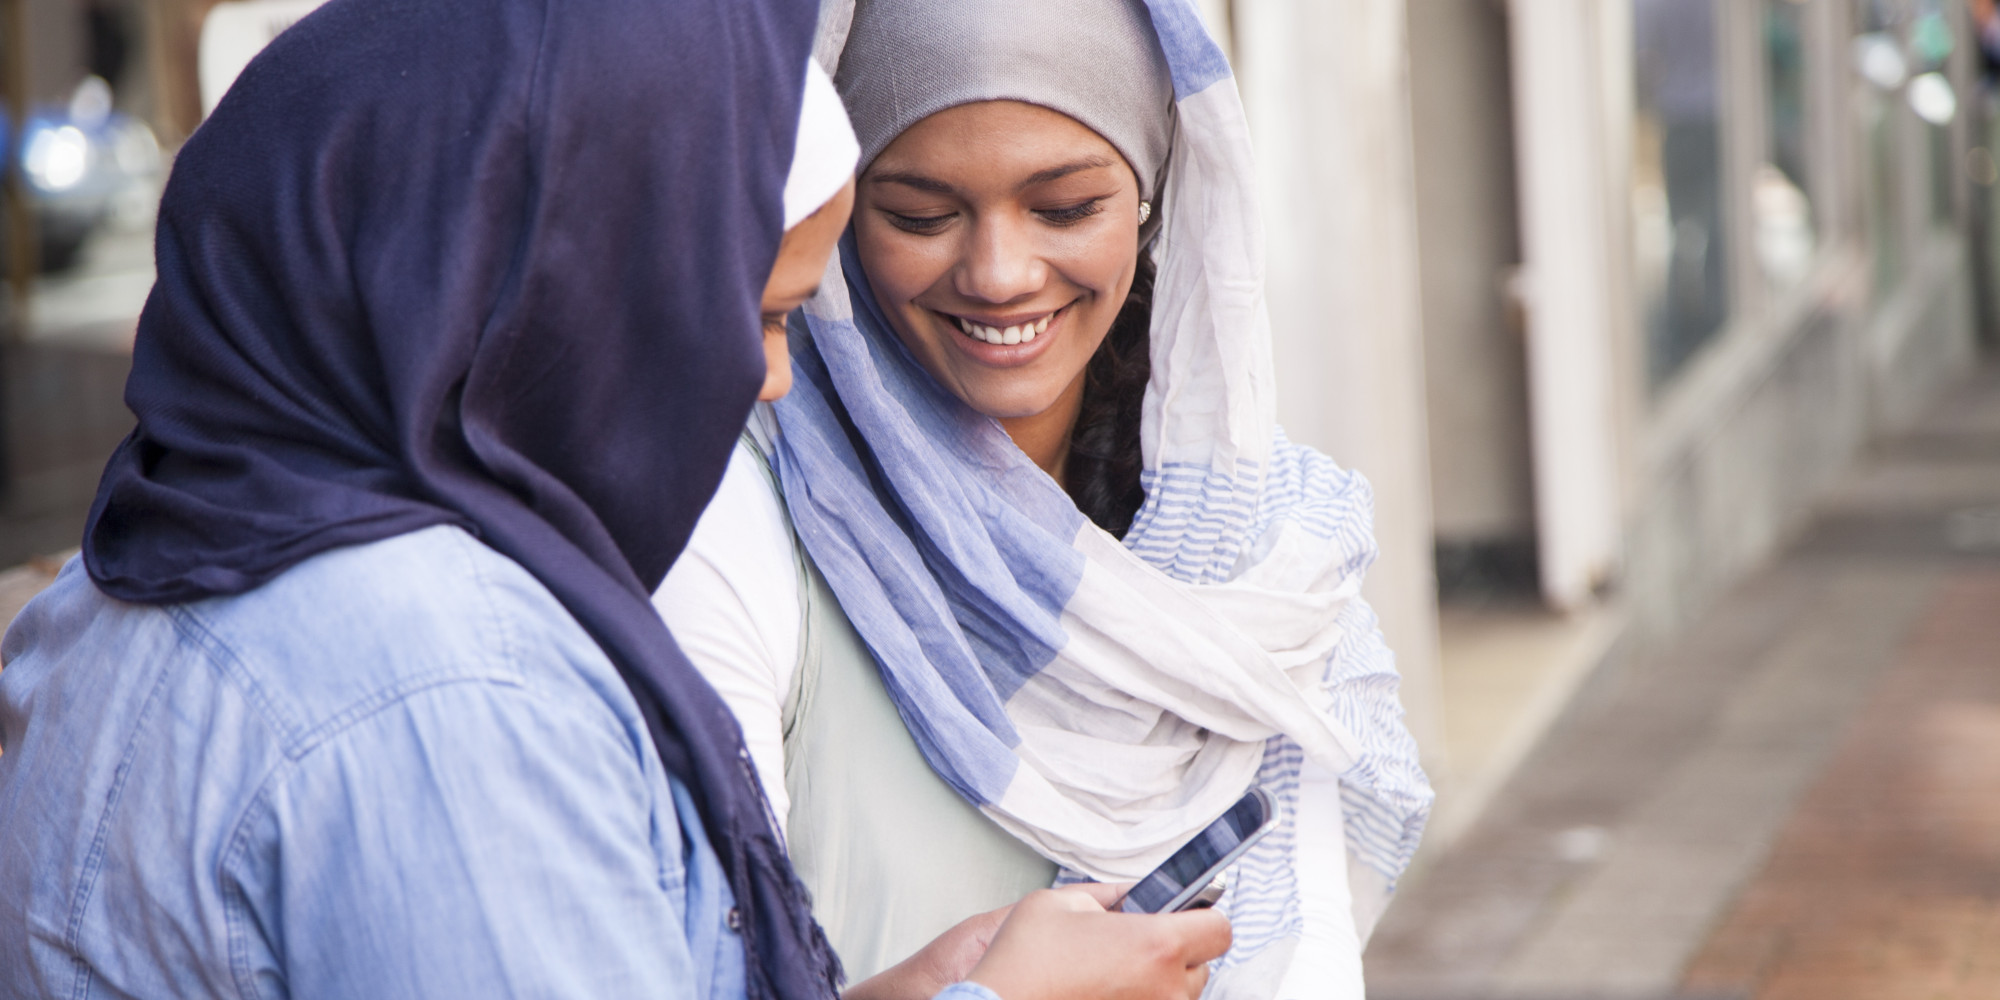 inglewood muslim girl personals Photos: this is what a muslim girl looks like positive imagery can have a tremendous impact by fighting stereotypes, celebrating diversity.